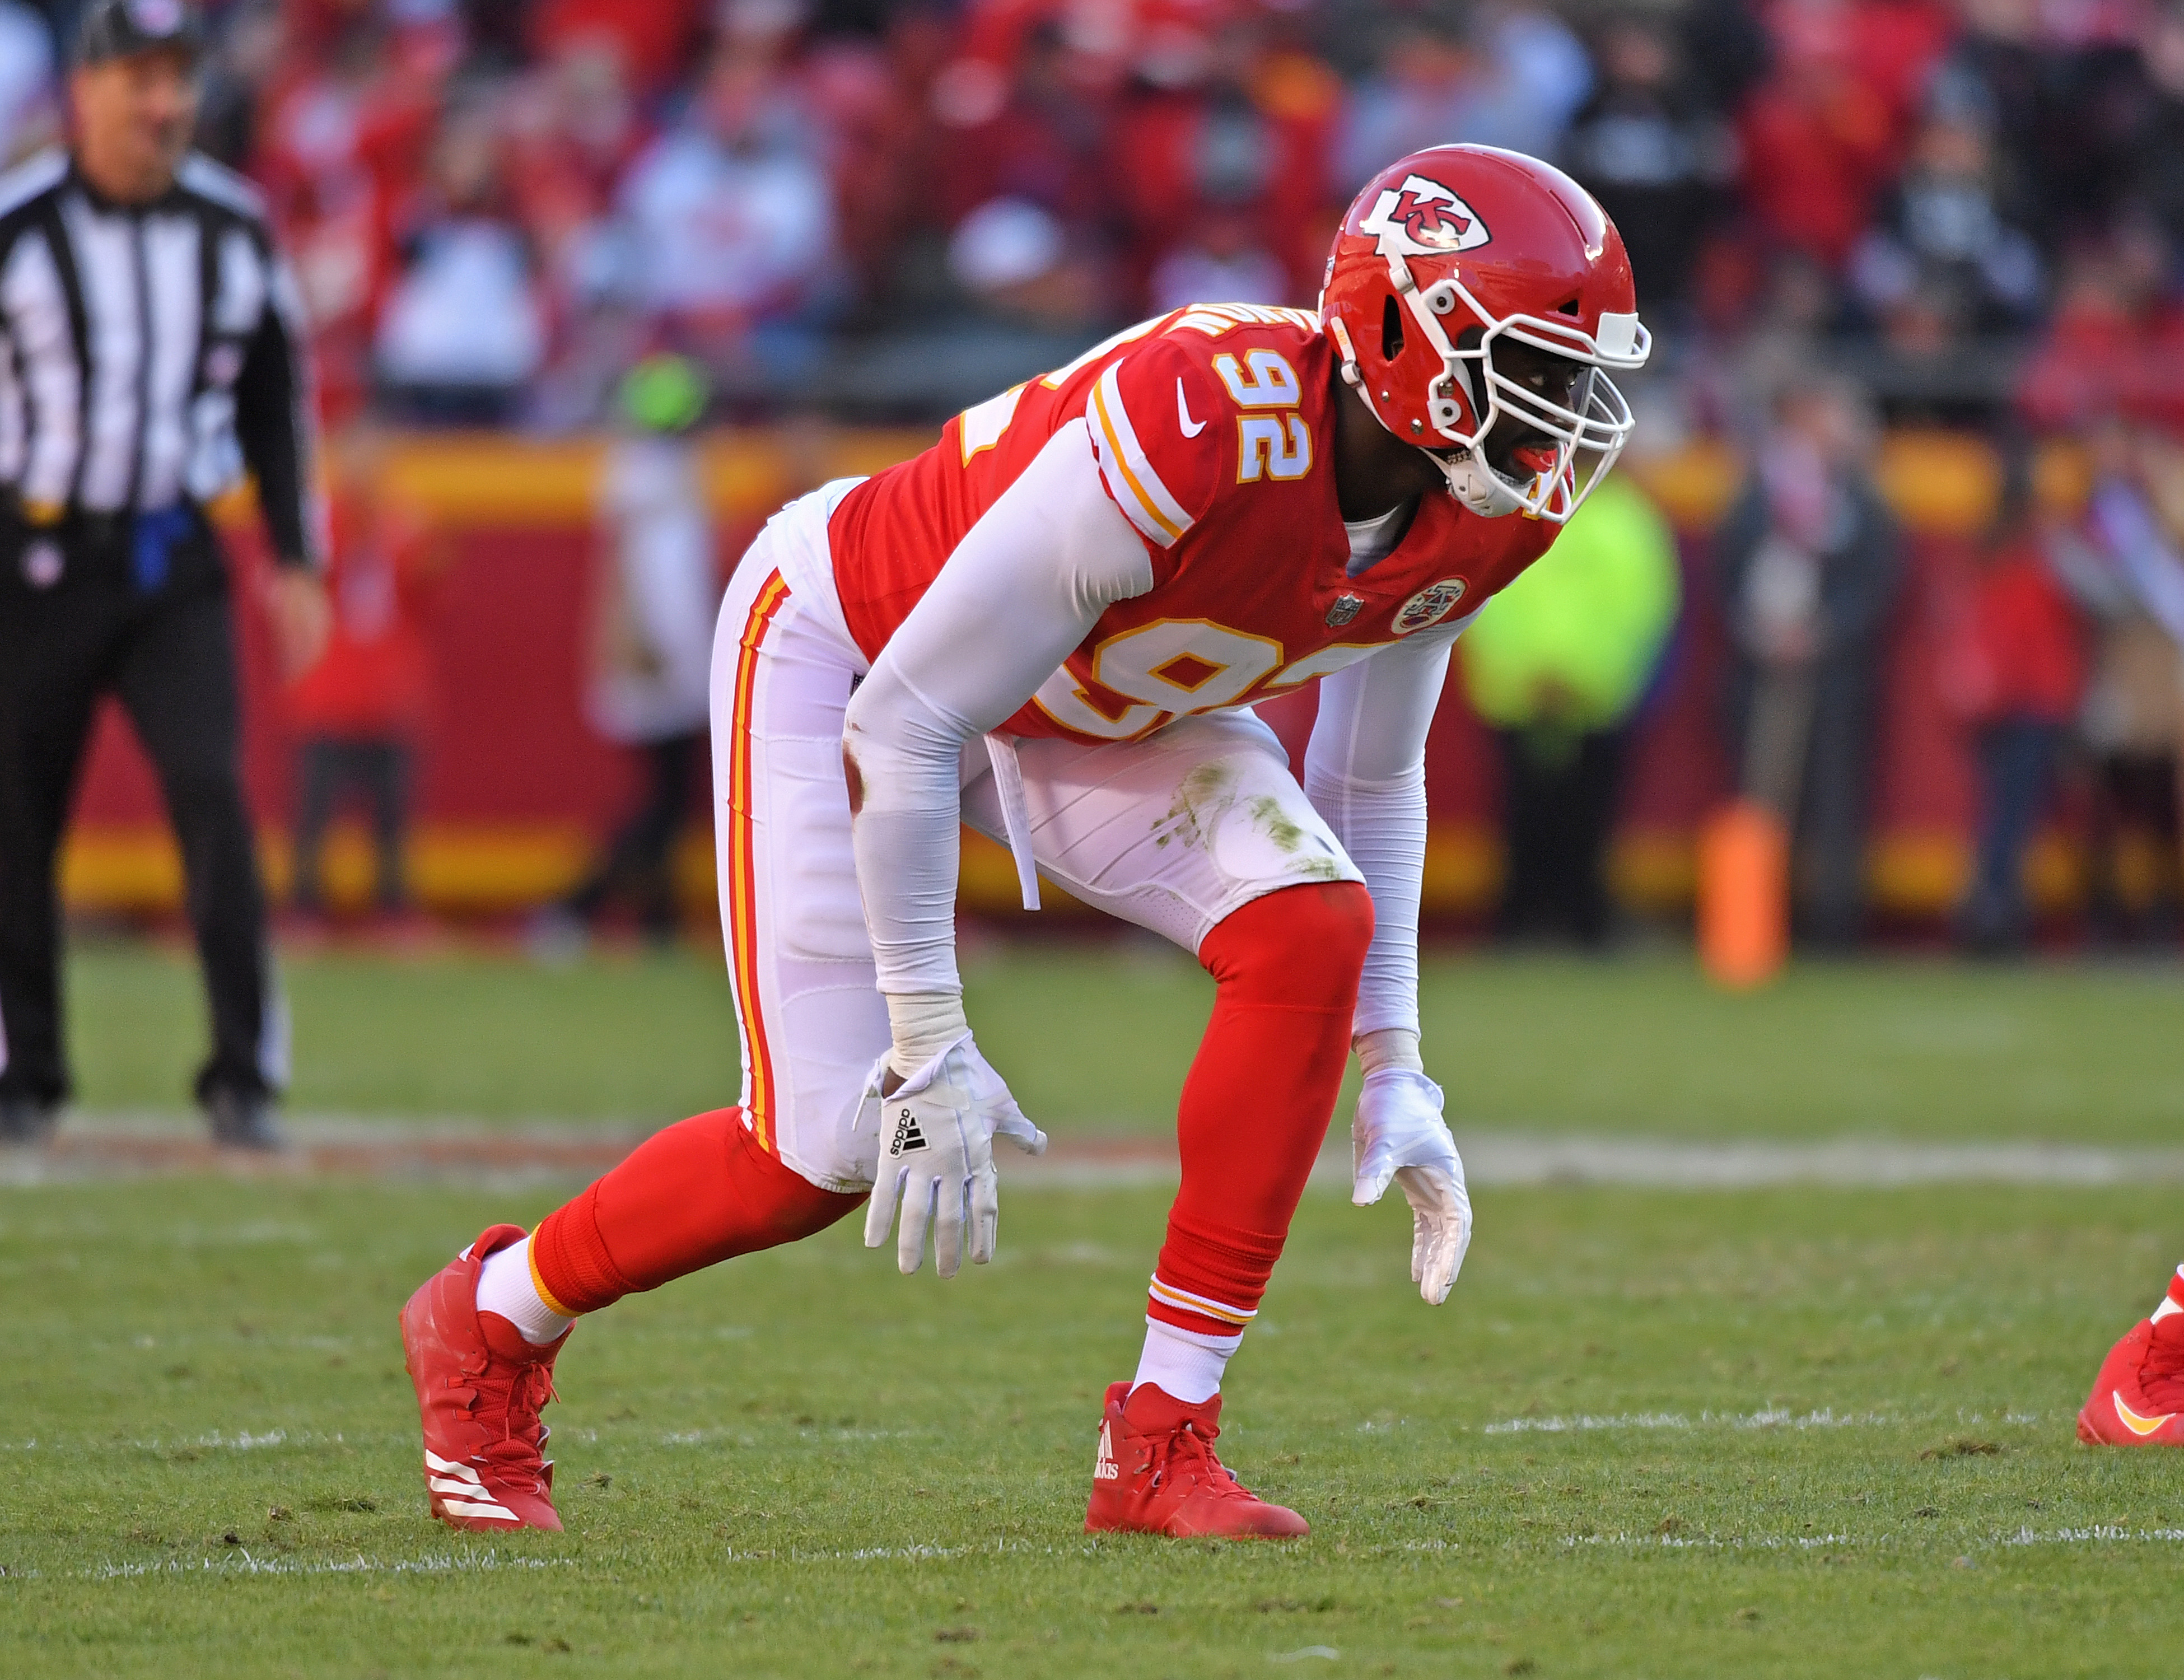 Now is the perfect time for Tanoh Kpassagnon to become who the Chiefs drafted him to be